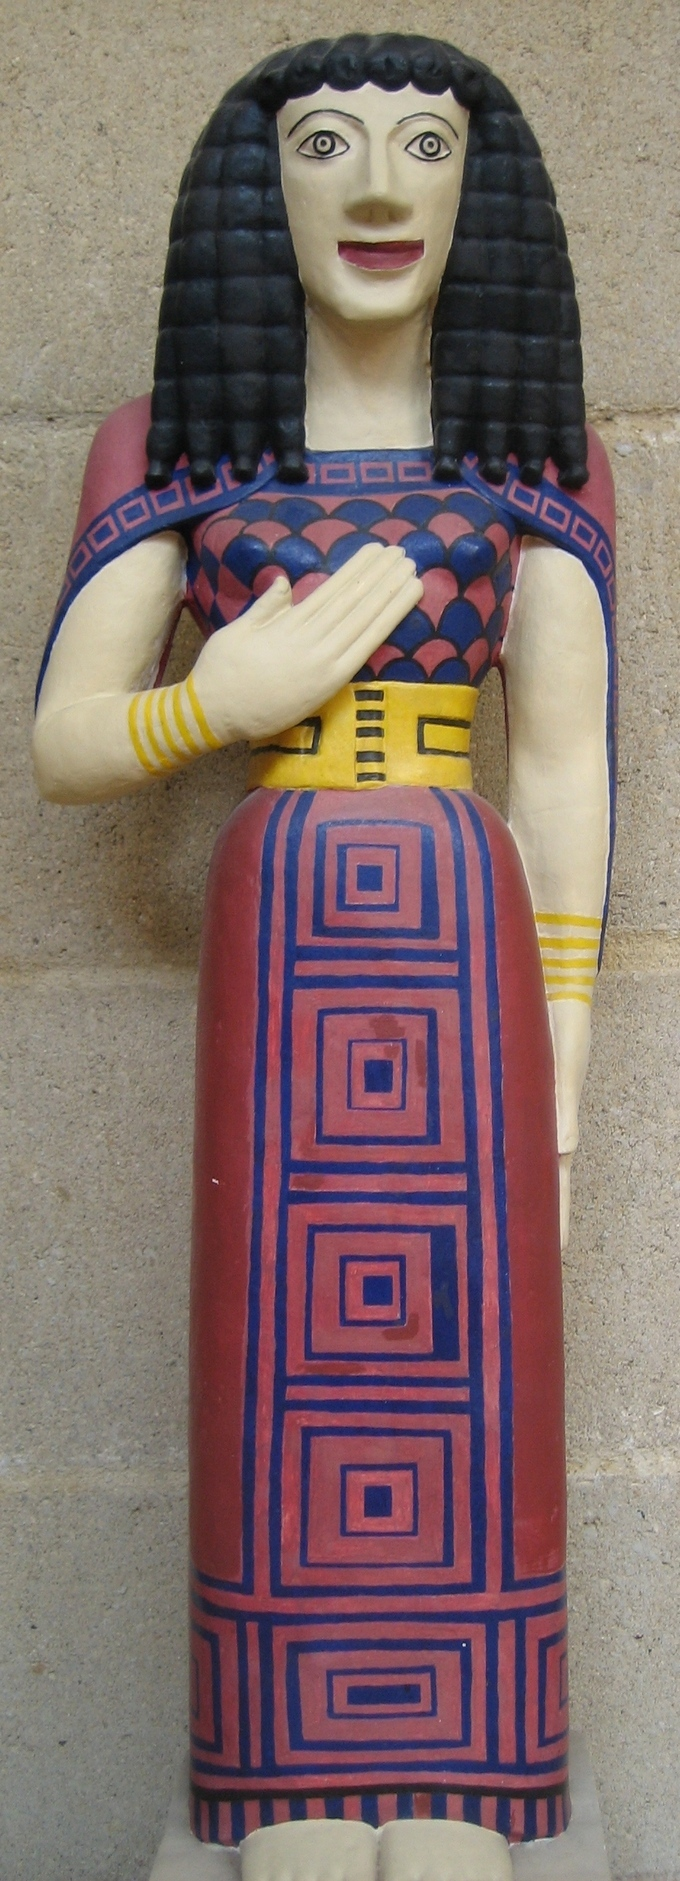 This is a color photo of reconstruction of Lady of Auxerre. The statue's hair, face, and dress have been painted. Her hair is dark brown, her lips are bright red, and the dress is decorated with a square geometric pattern.